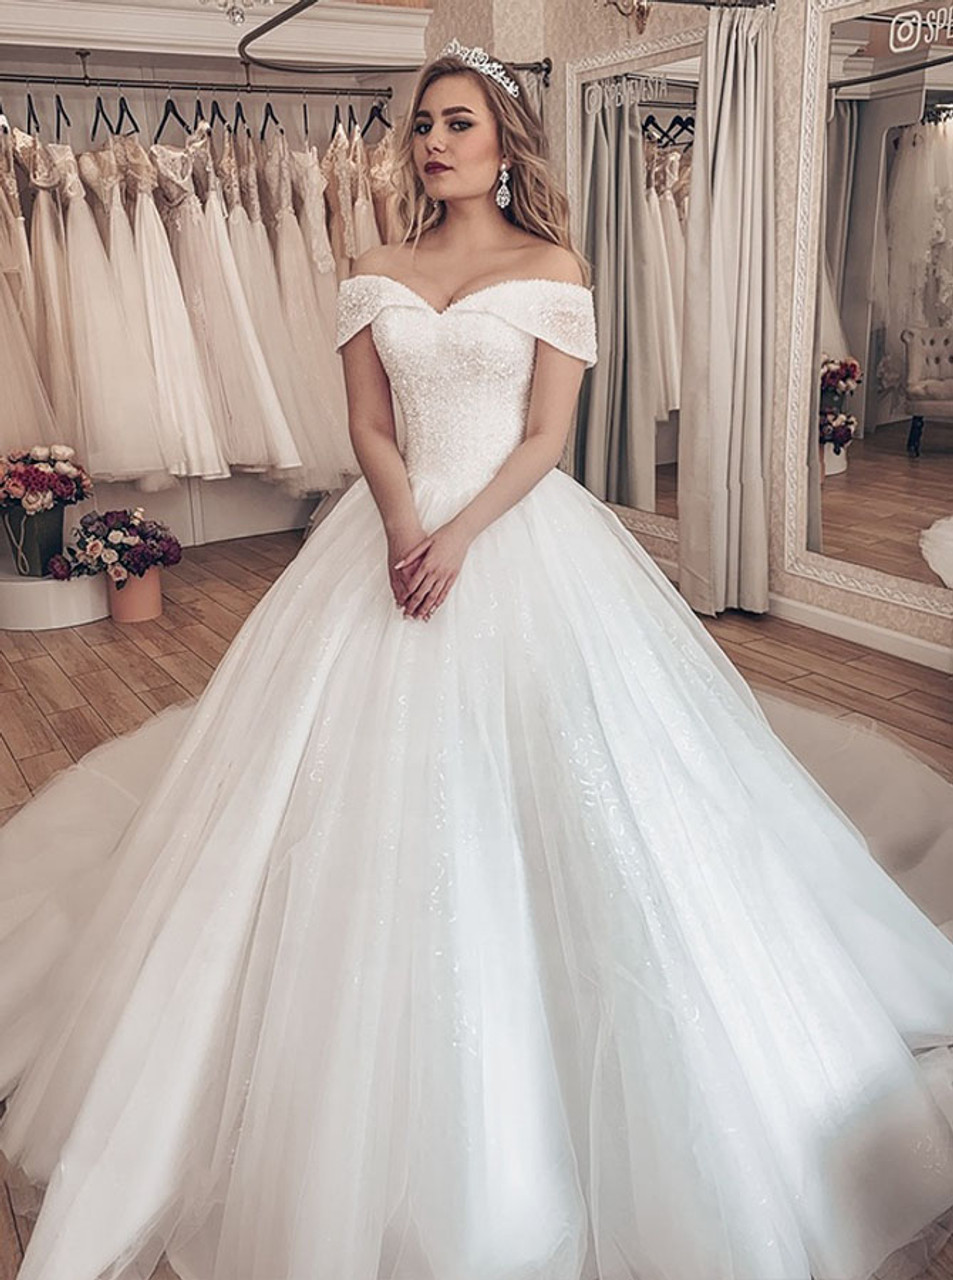 Luxurious Princess Bridal Dress Off The Shoulder Crystal Ball Gown Dress 12220,Wedding Dresses Catalogs Free By Mail